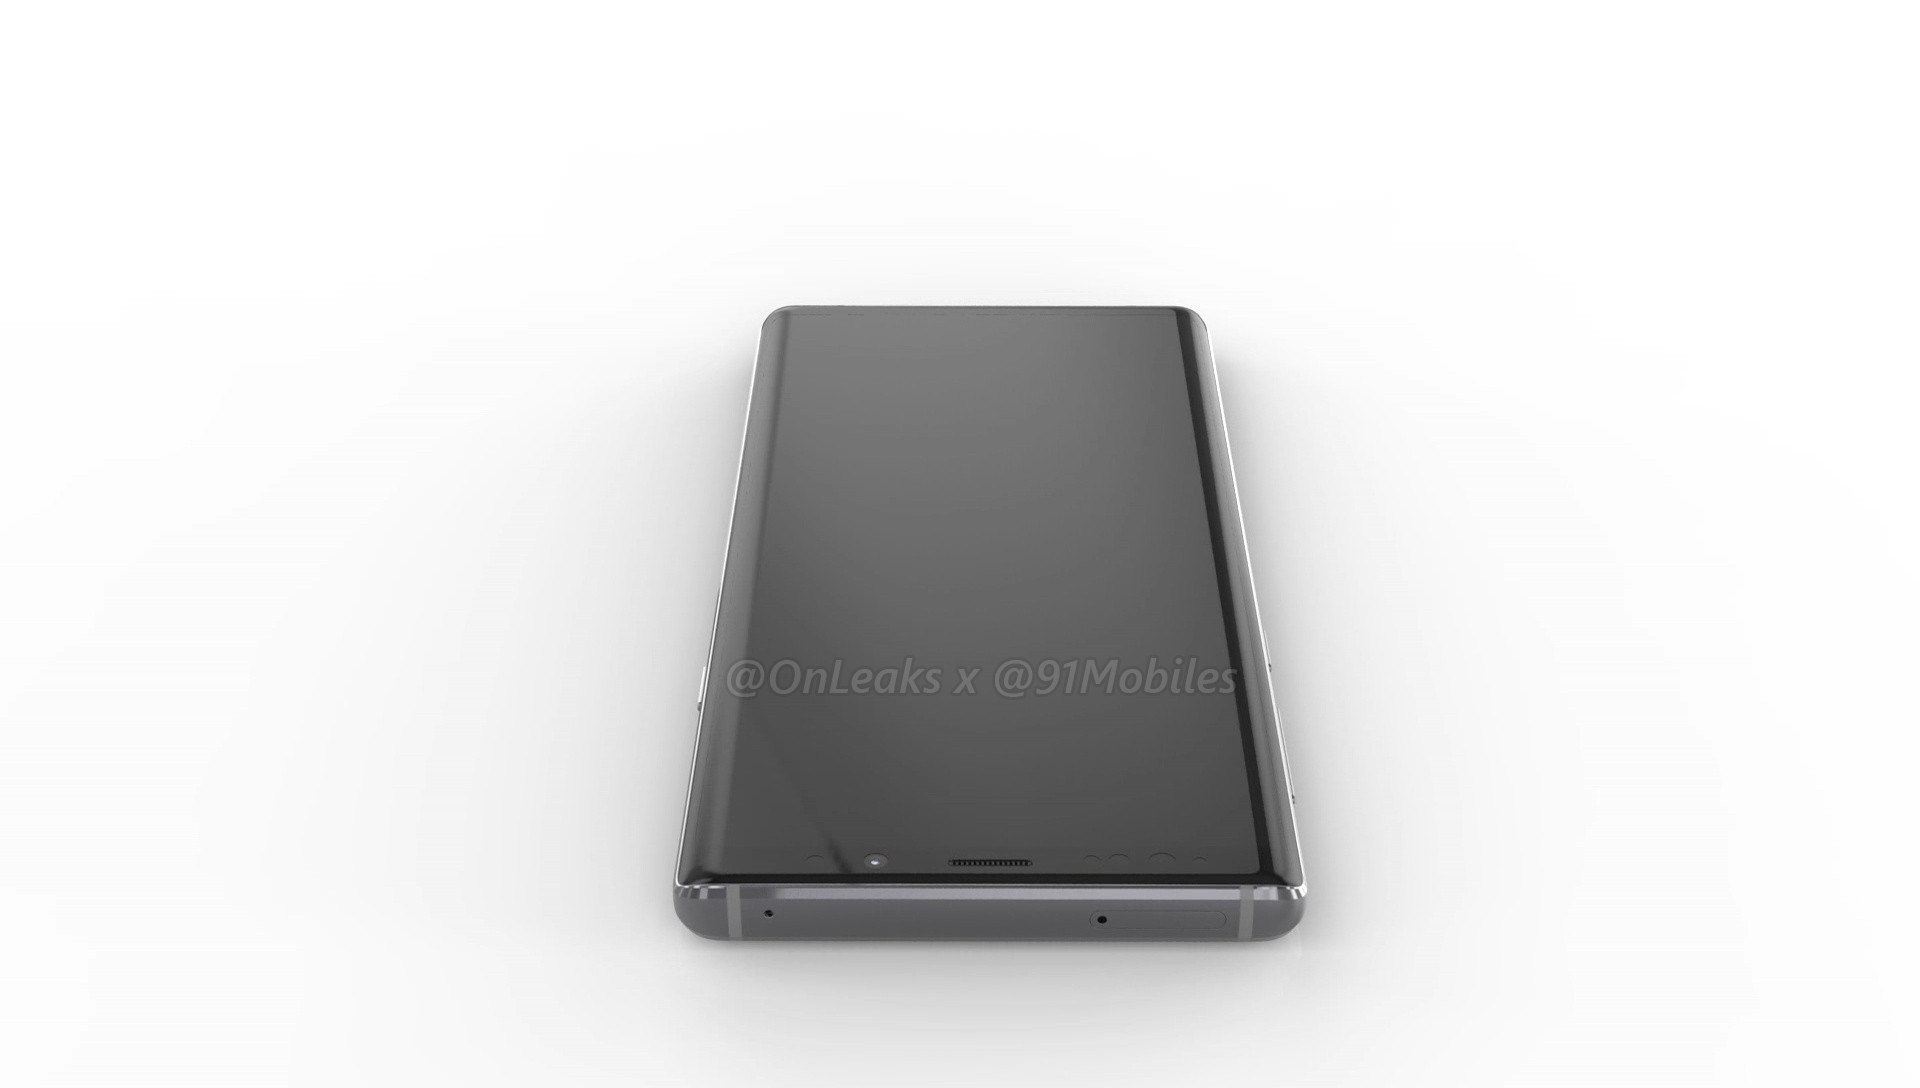 Samsung-Galaxy-Note-9-render-91mobiles-5